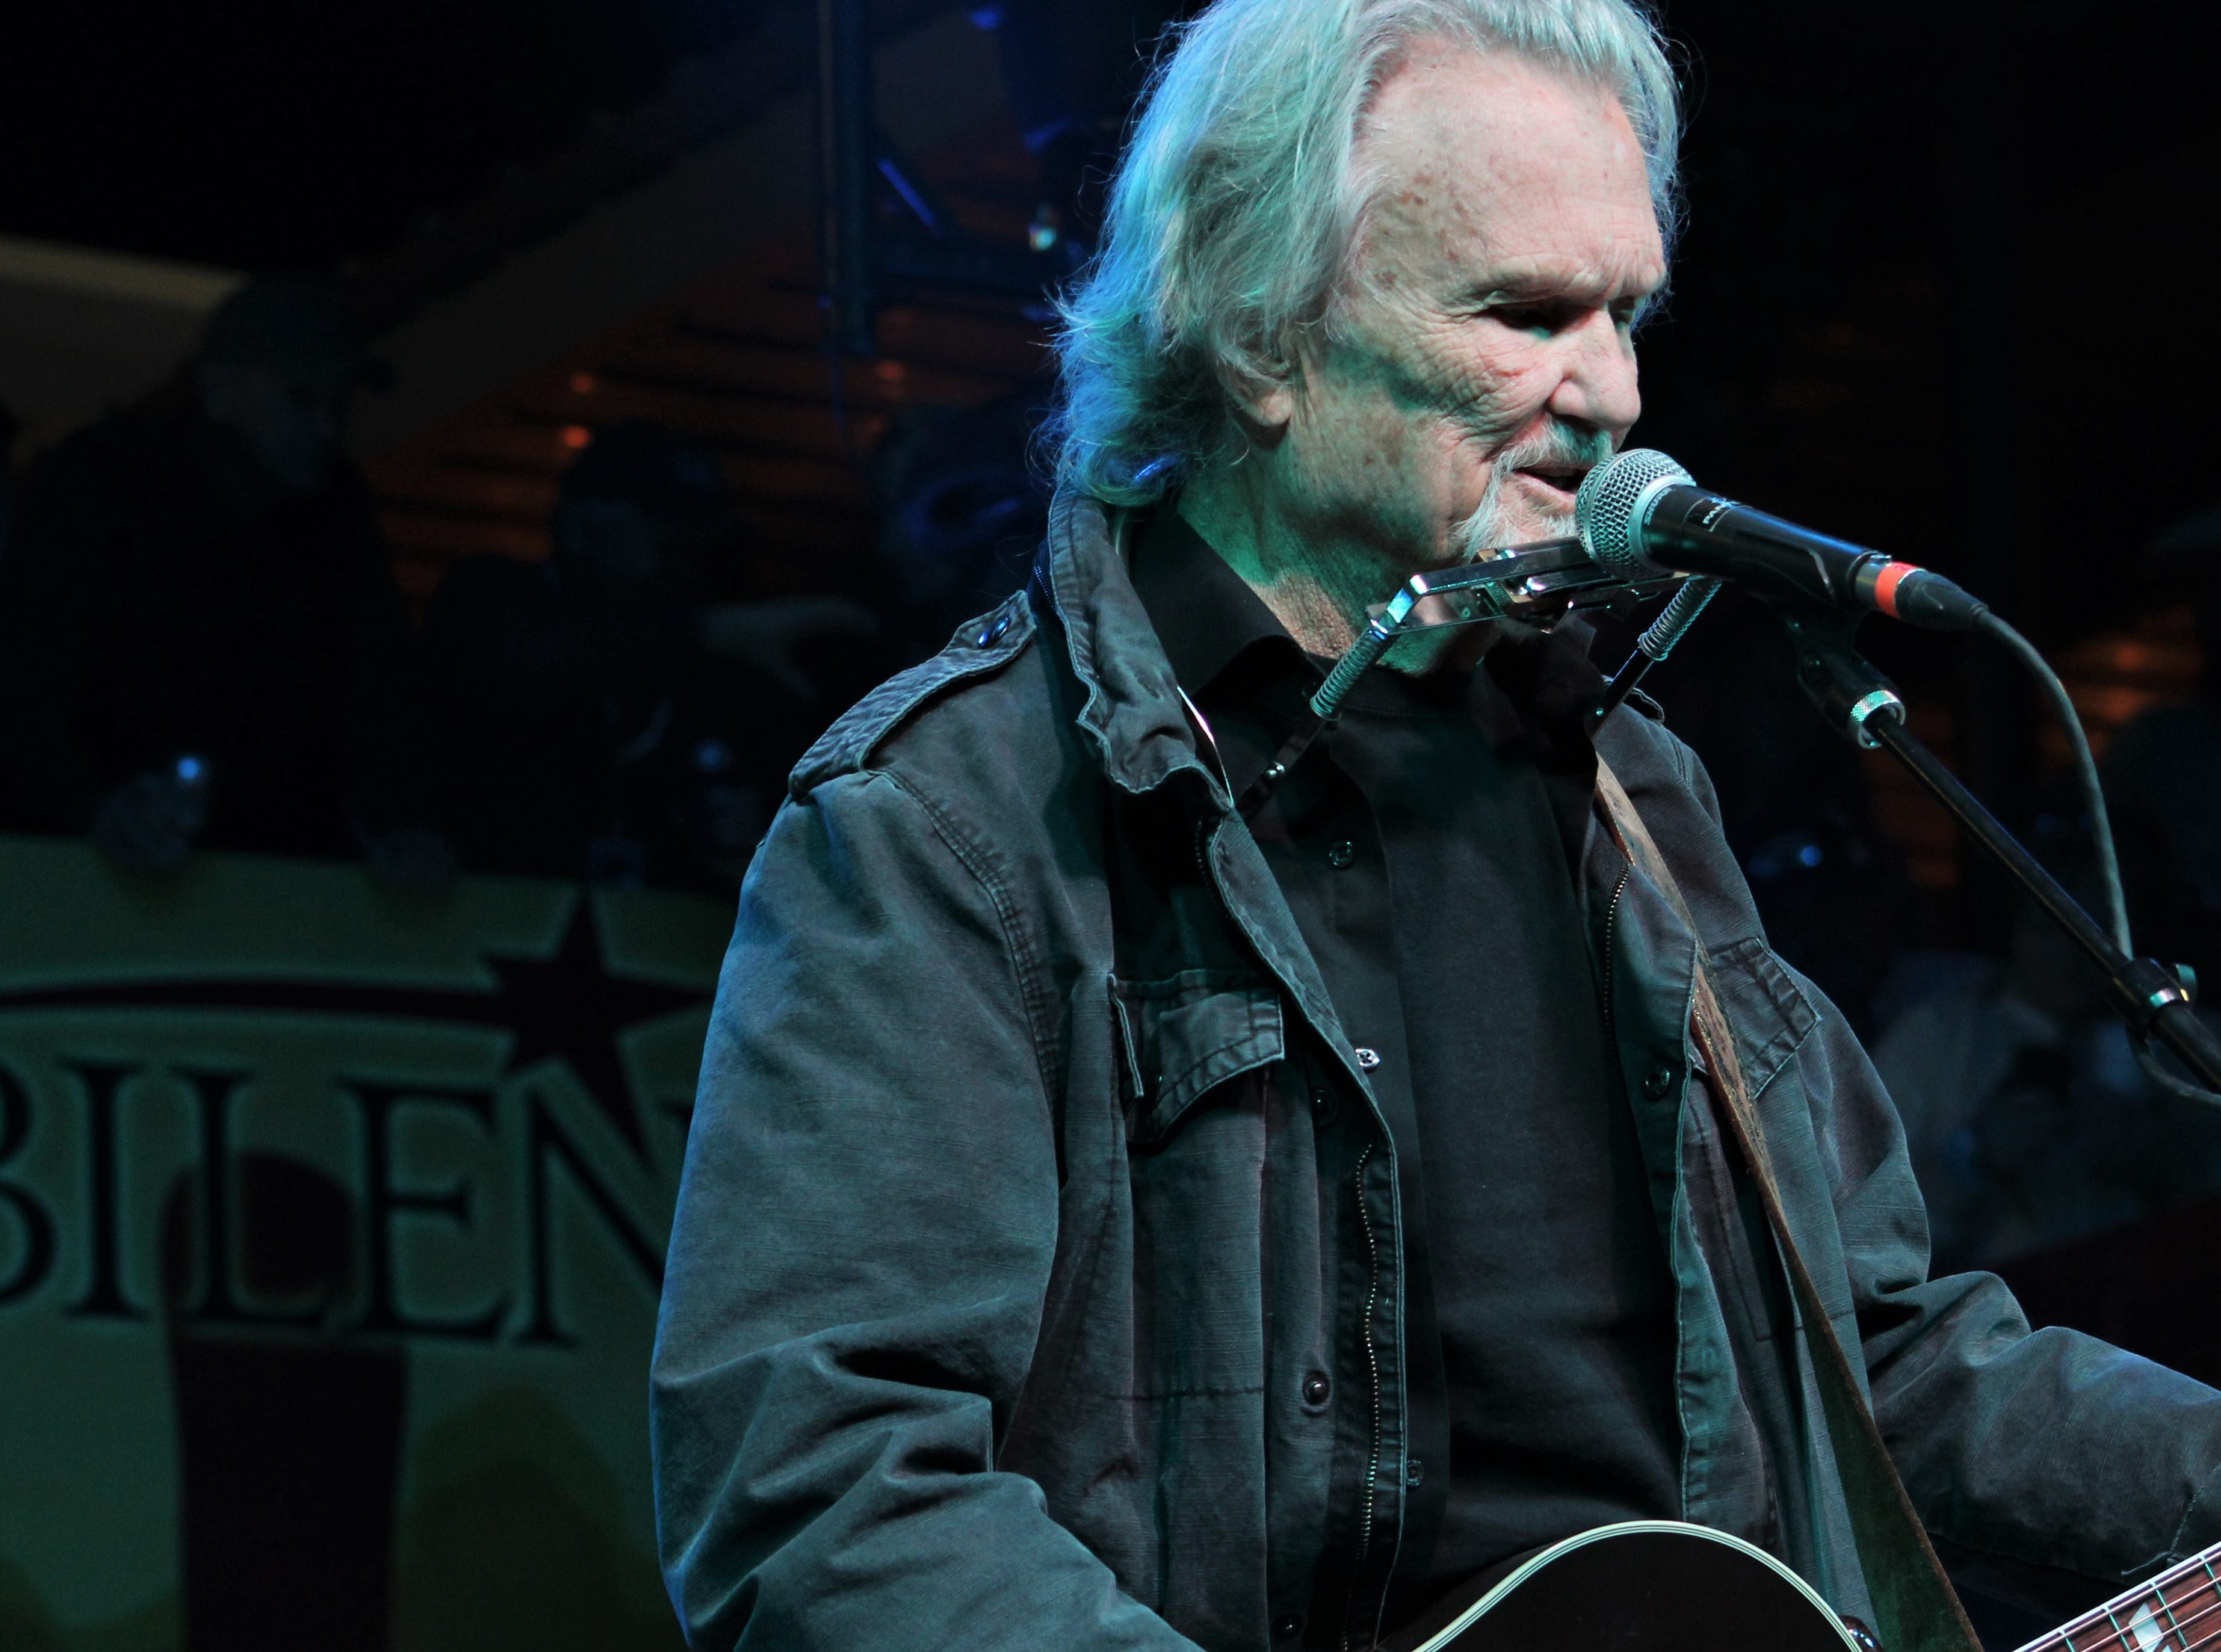 Krist Kristofferson on Saturday evening March 23, 2019, at the 9th Outlaws & Legends Music Festival.